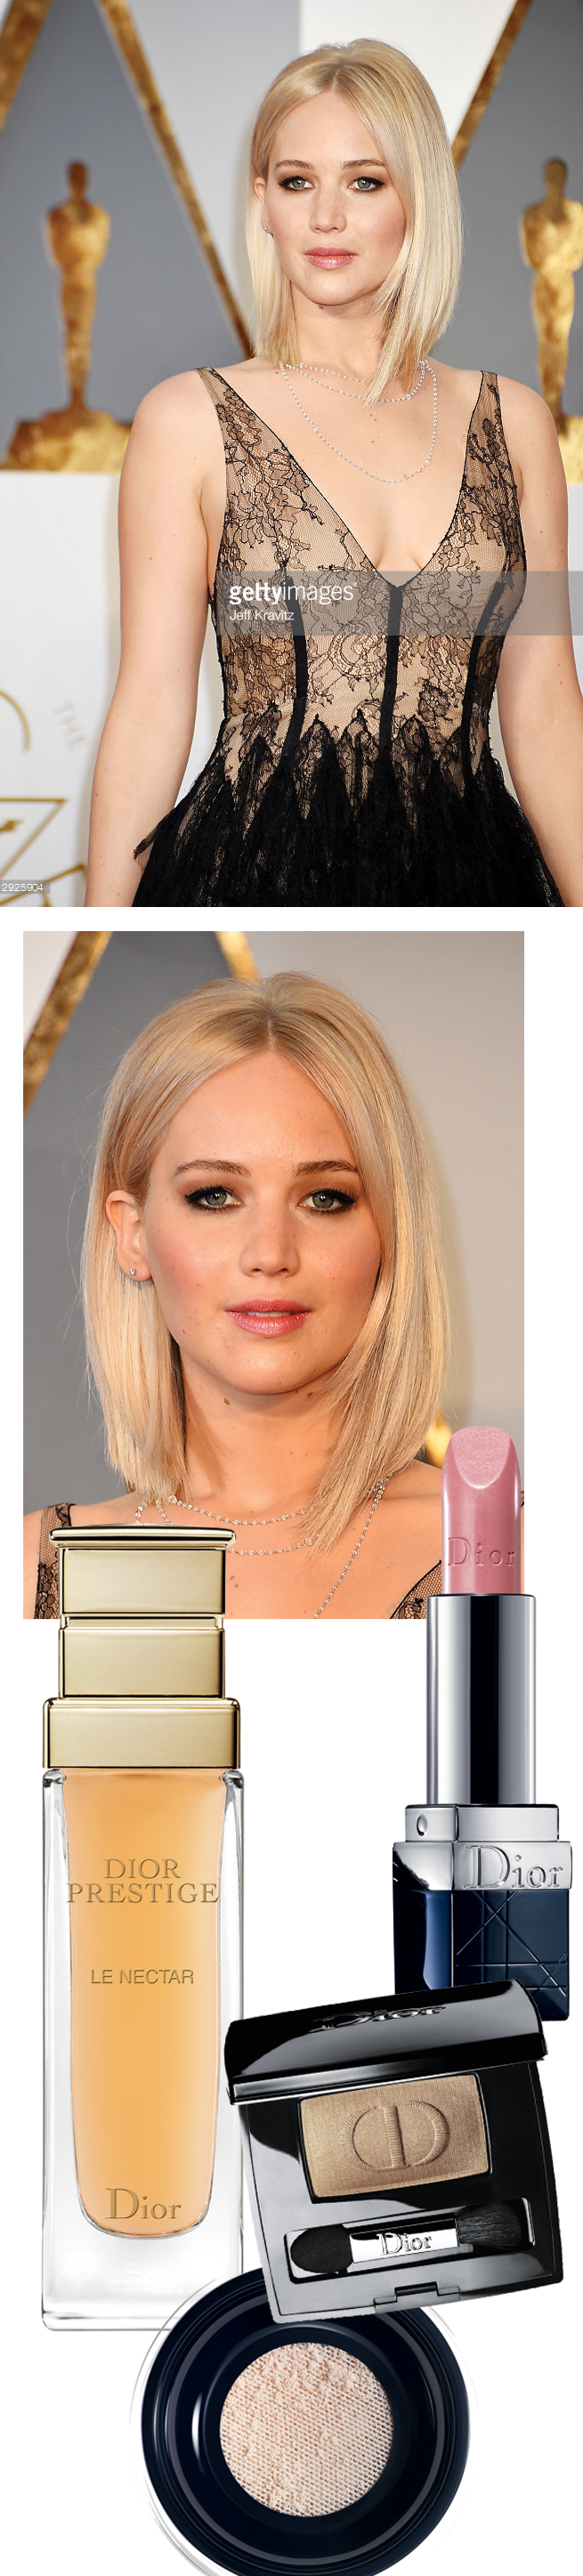 Jennifer Lawrence, Dior Beauty, Oscars 2016, Red Carpet Look, Perfect wedding magazine